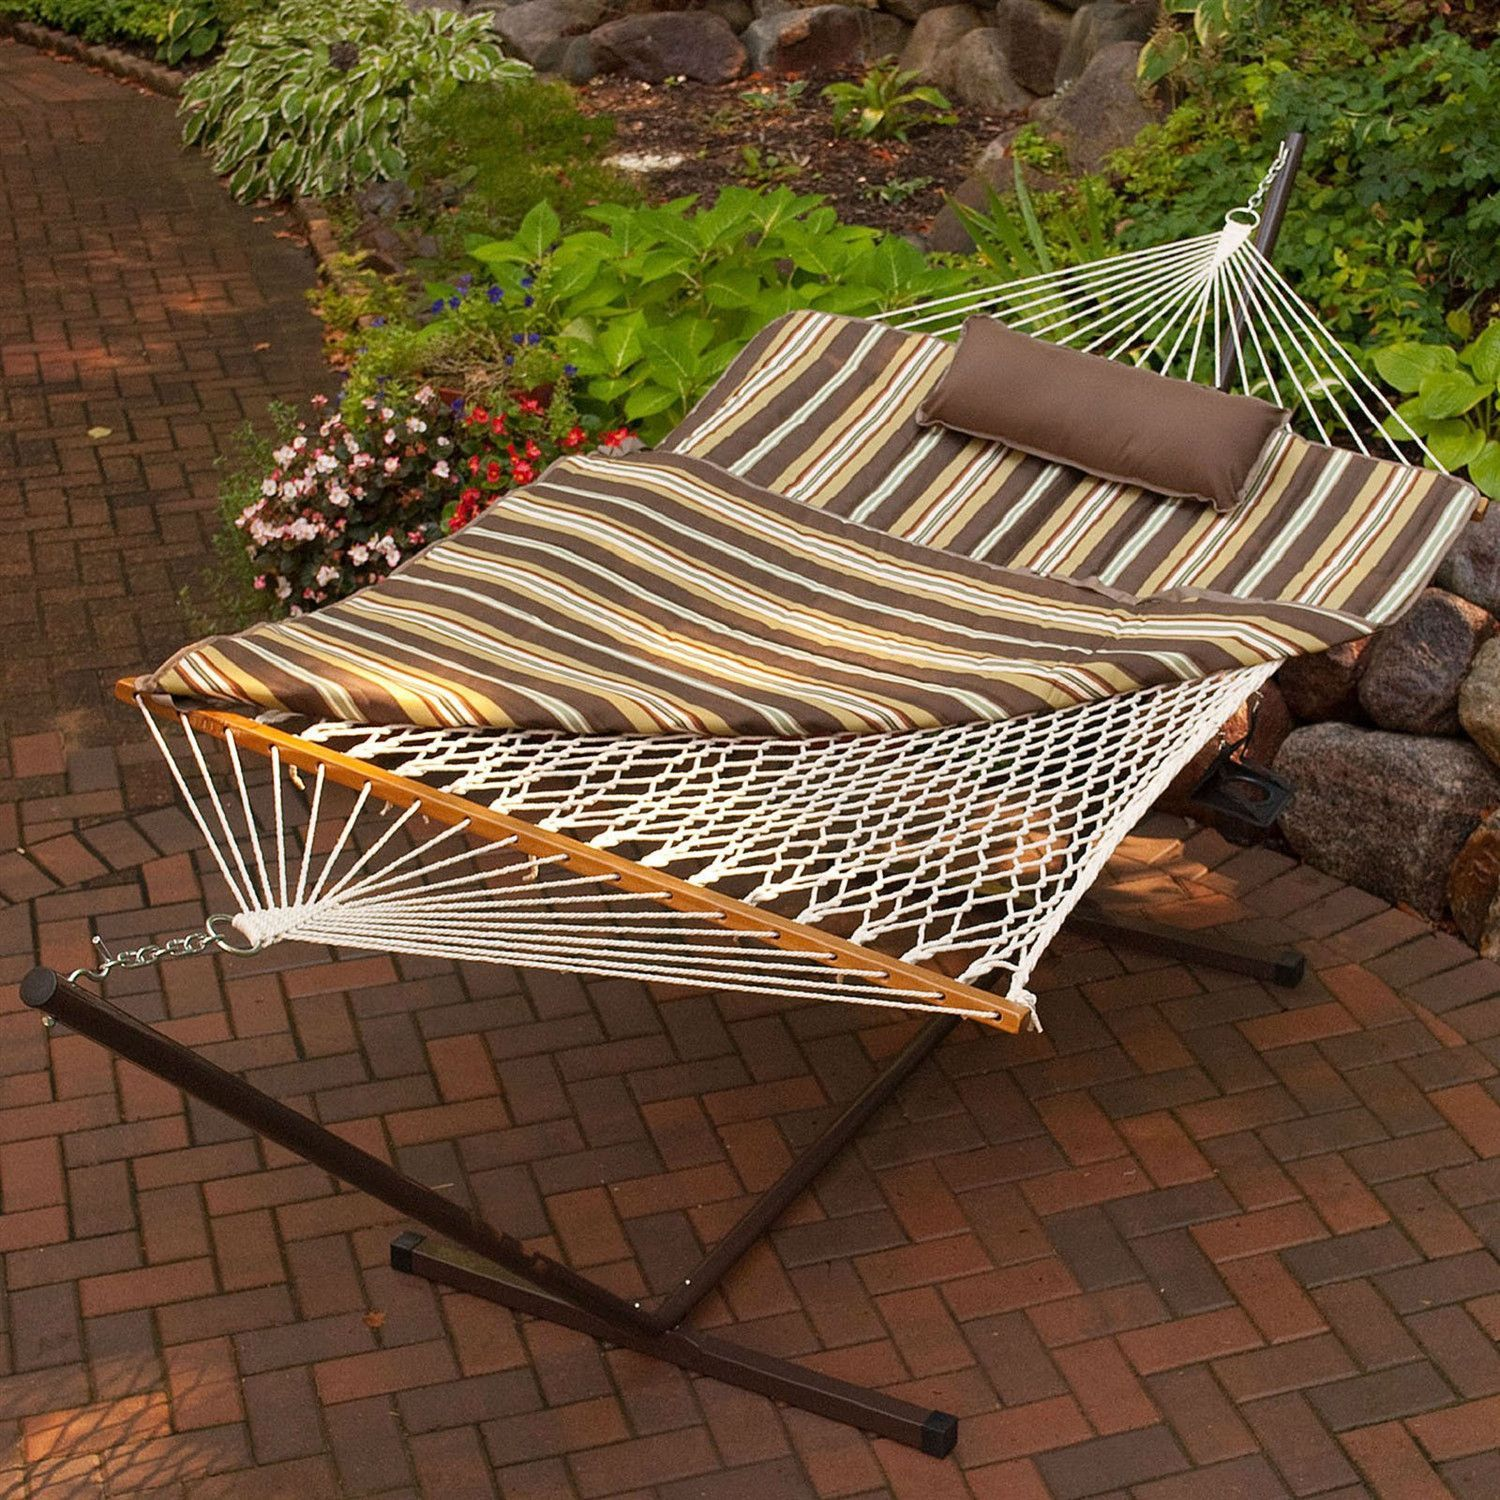 Outdoor Patio Deck 11 Ft Hammock With Metal Stand And Pad Pillow Set Patio Deck Outdoor Patio Pillow Set